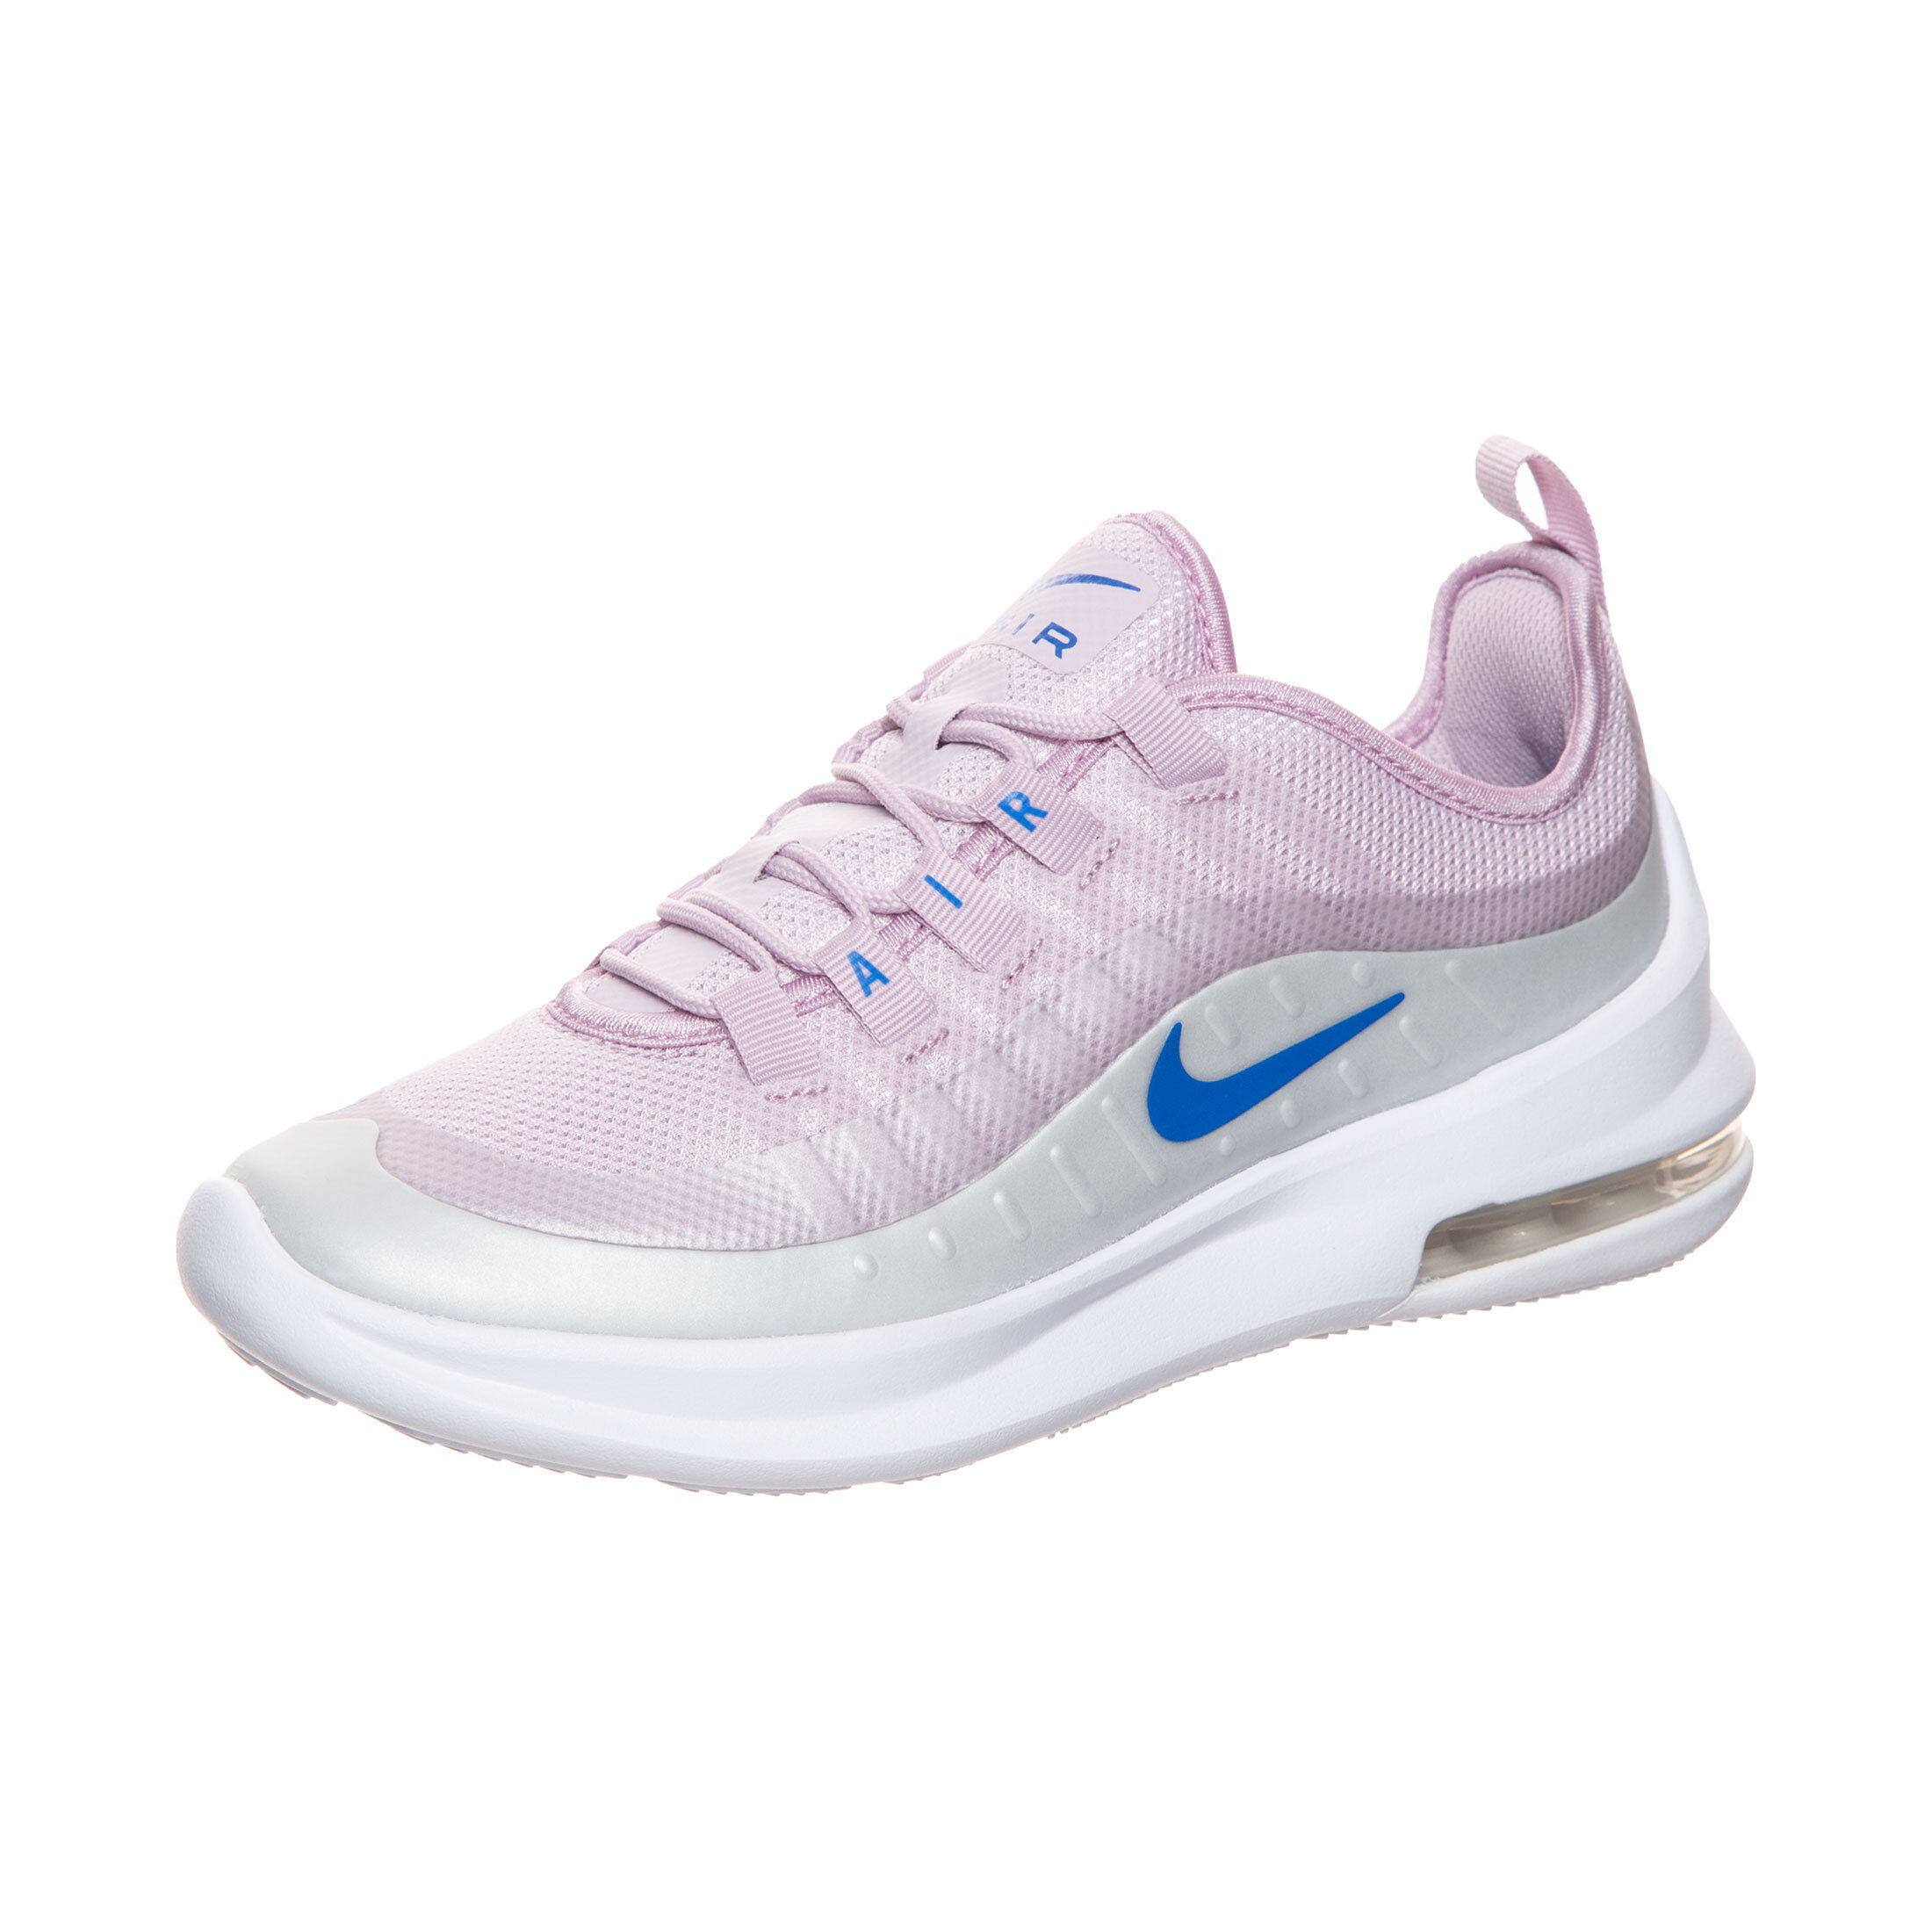 Nike Sportswear Air Max Axis Sneaker Kinder bei OUTFITTER